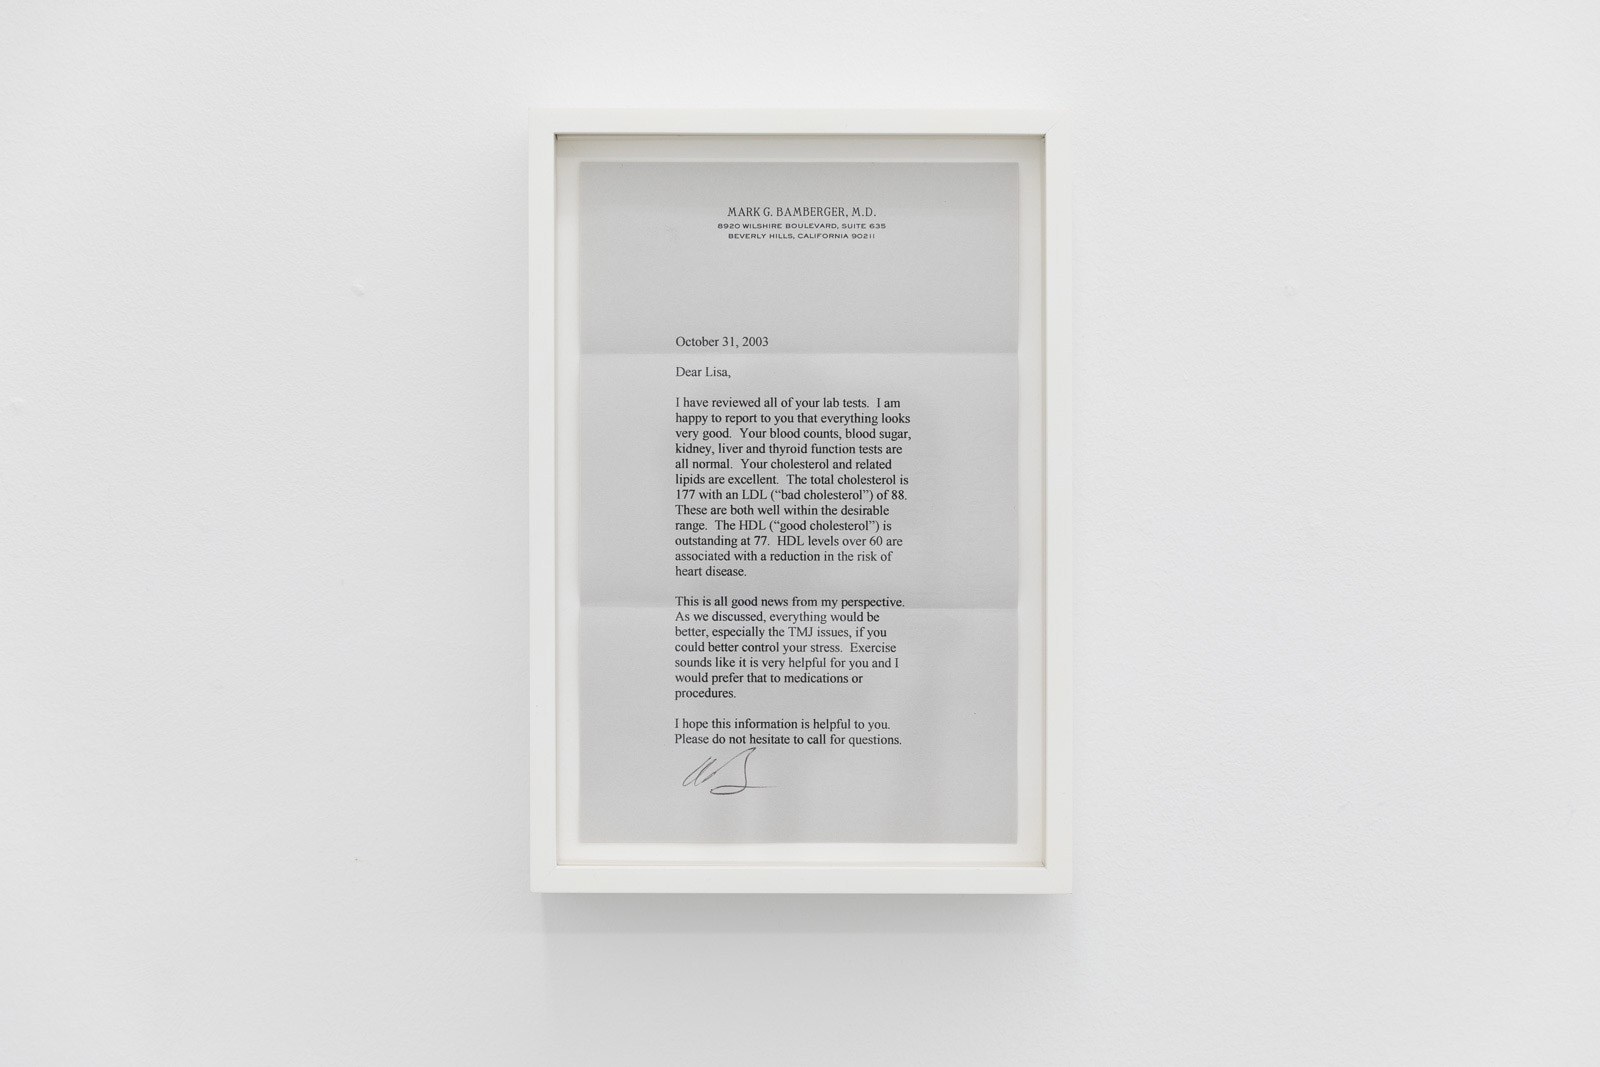 Letters From Dr. Bamberger, 2002-2010. 9 Annual post-physical letters in artist's frame. Variable installation, 24,5 x 17 x 3,8 cm each. Unique